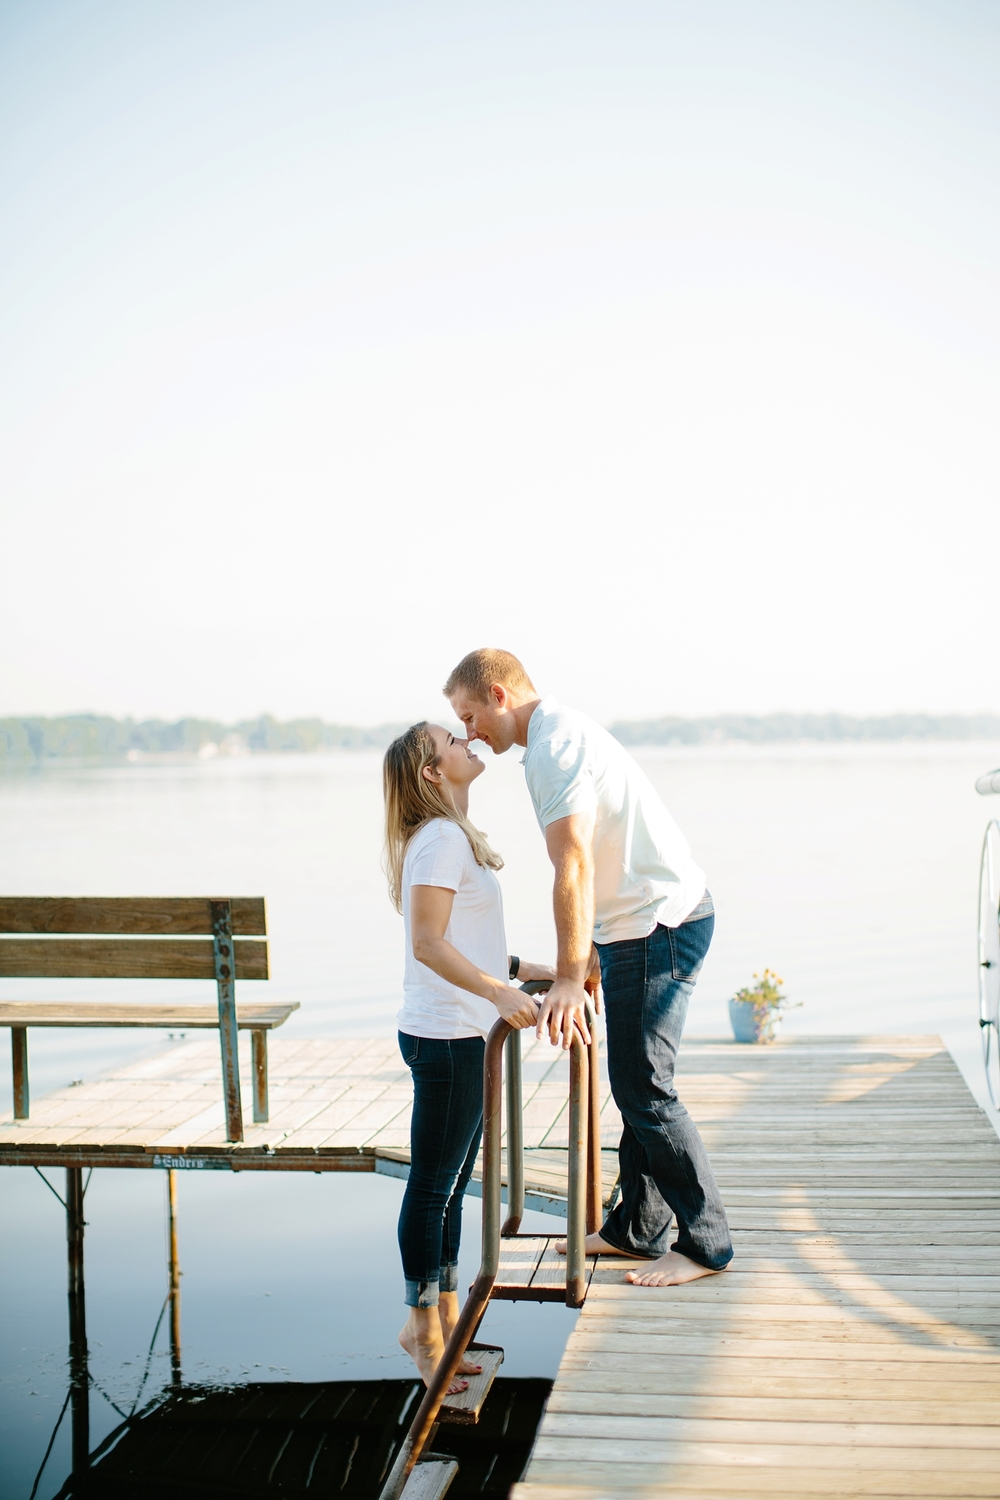 SunriseEngagementSession_0005.jpg